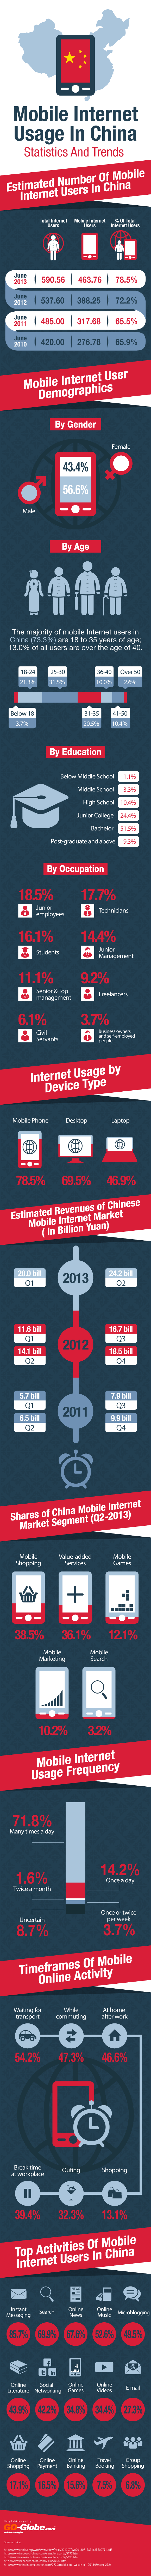 China-Mobile-Internet-Usage